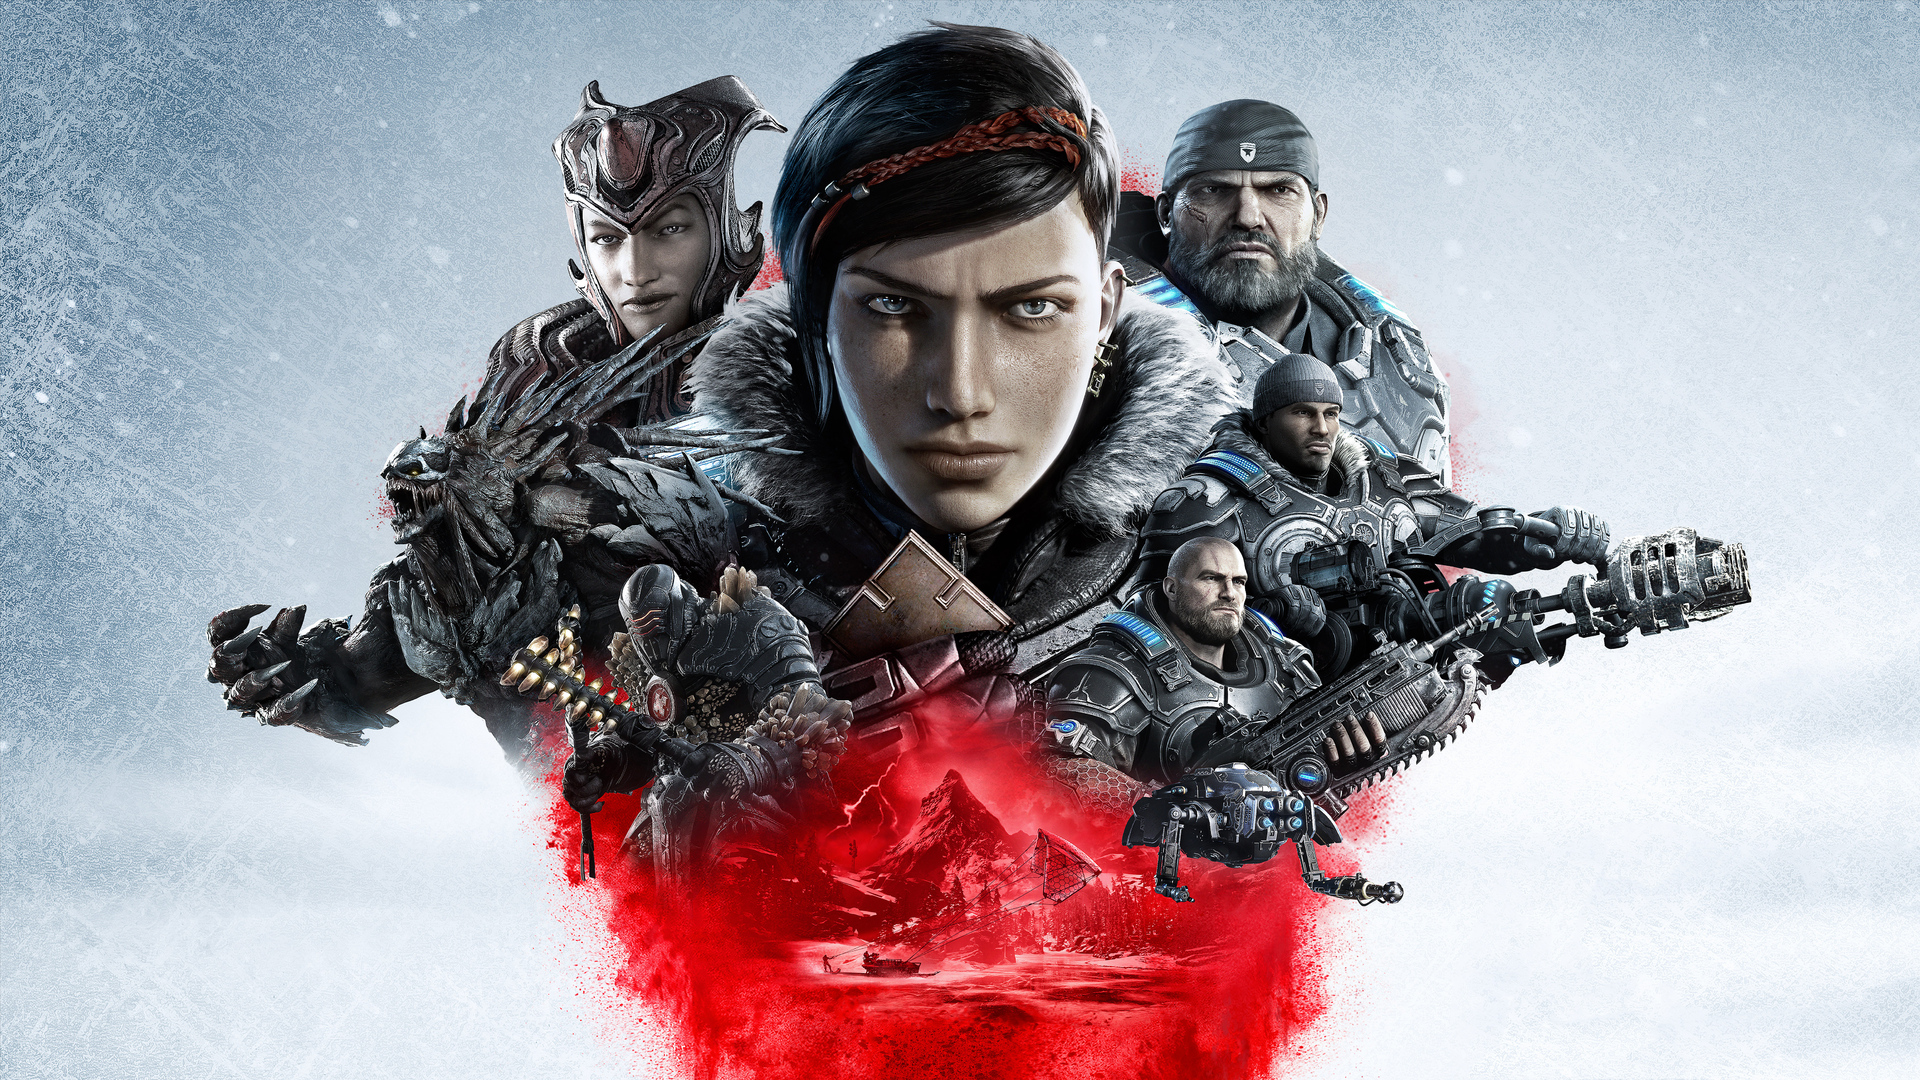 1920x1080 Gears 5 5k Laptop Full Hd 1080p Hd 4k Wallpapers